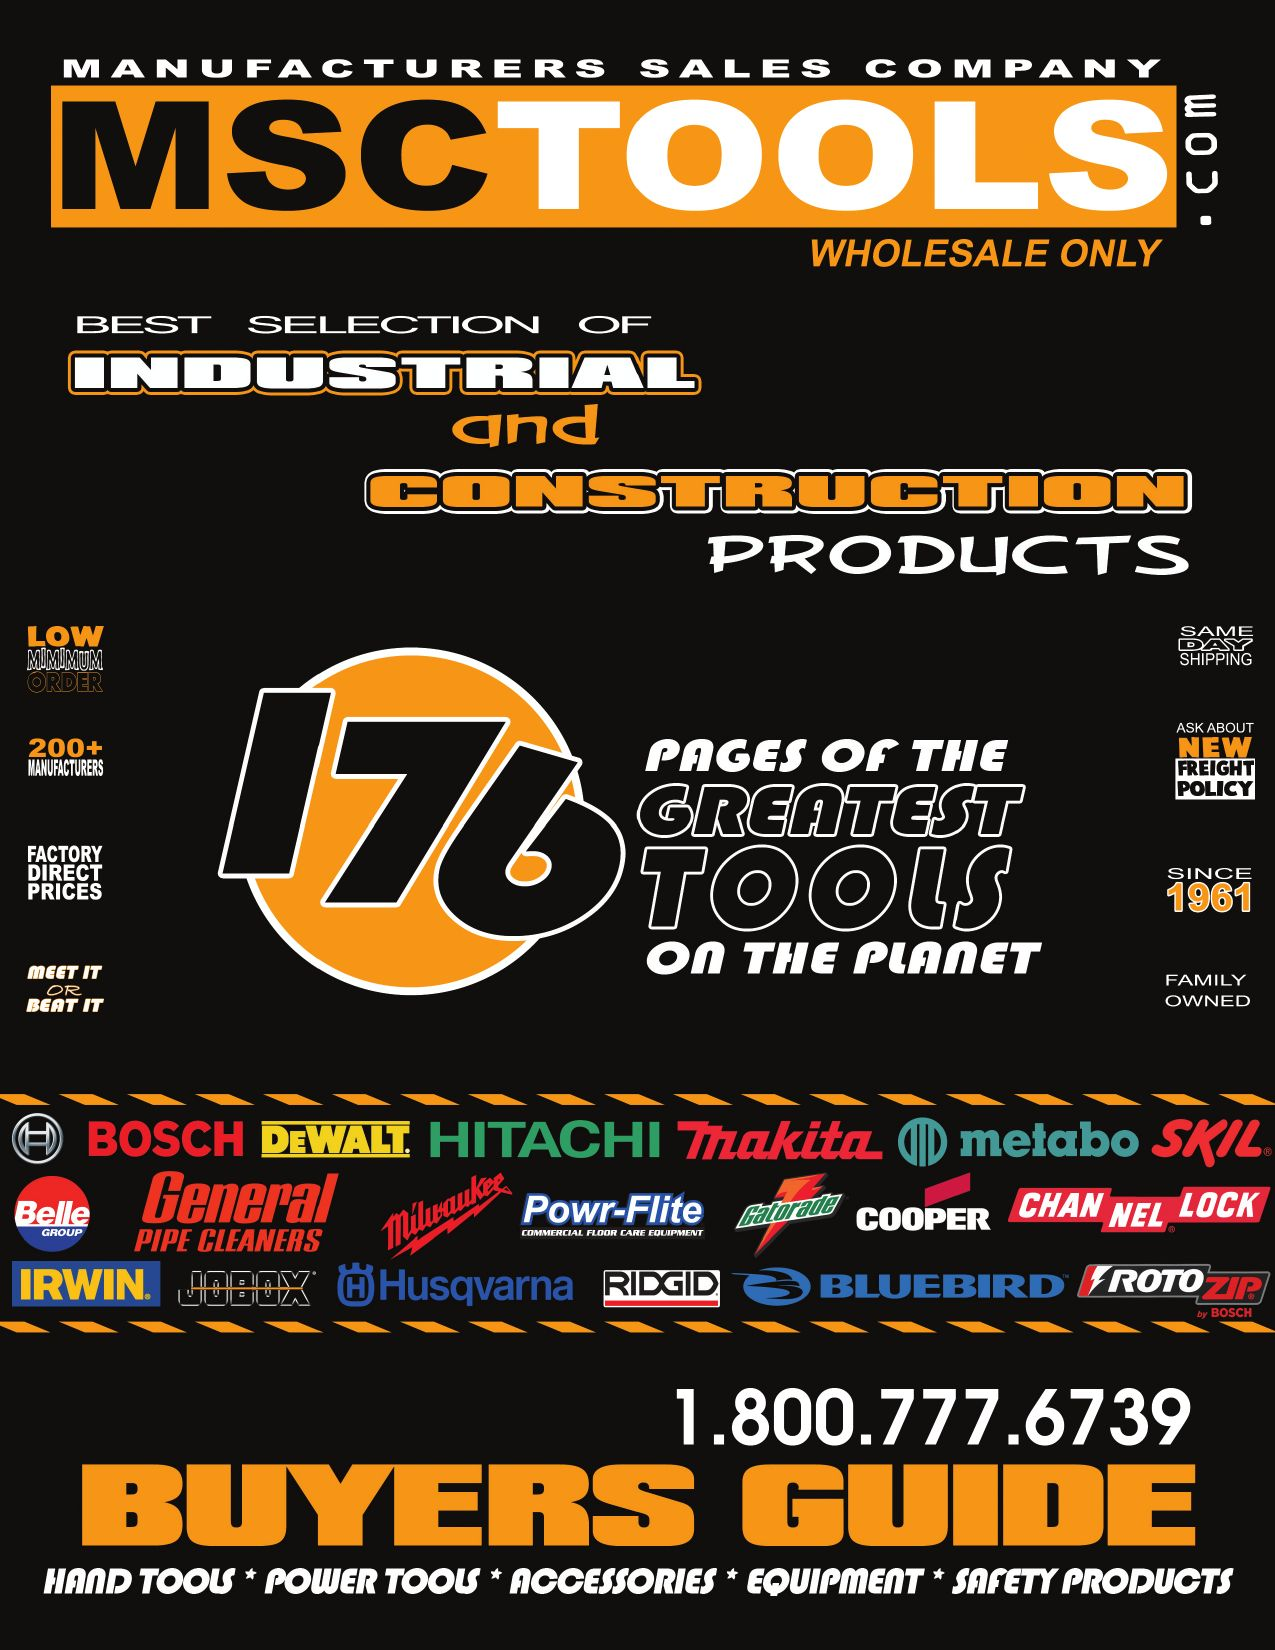 Msctools Catalog 2009 By Stacie Gerber Issuu Krbb Honda Small Engine Carburetor Rammer Float Diagram And Parts